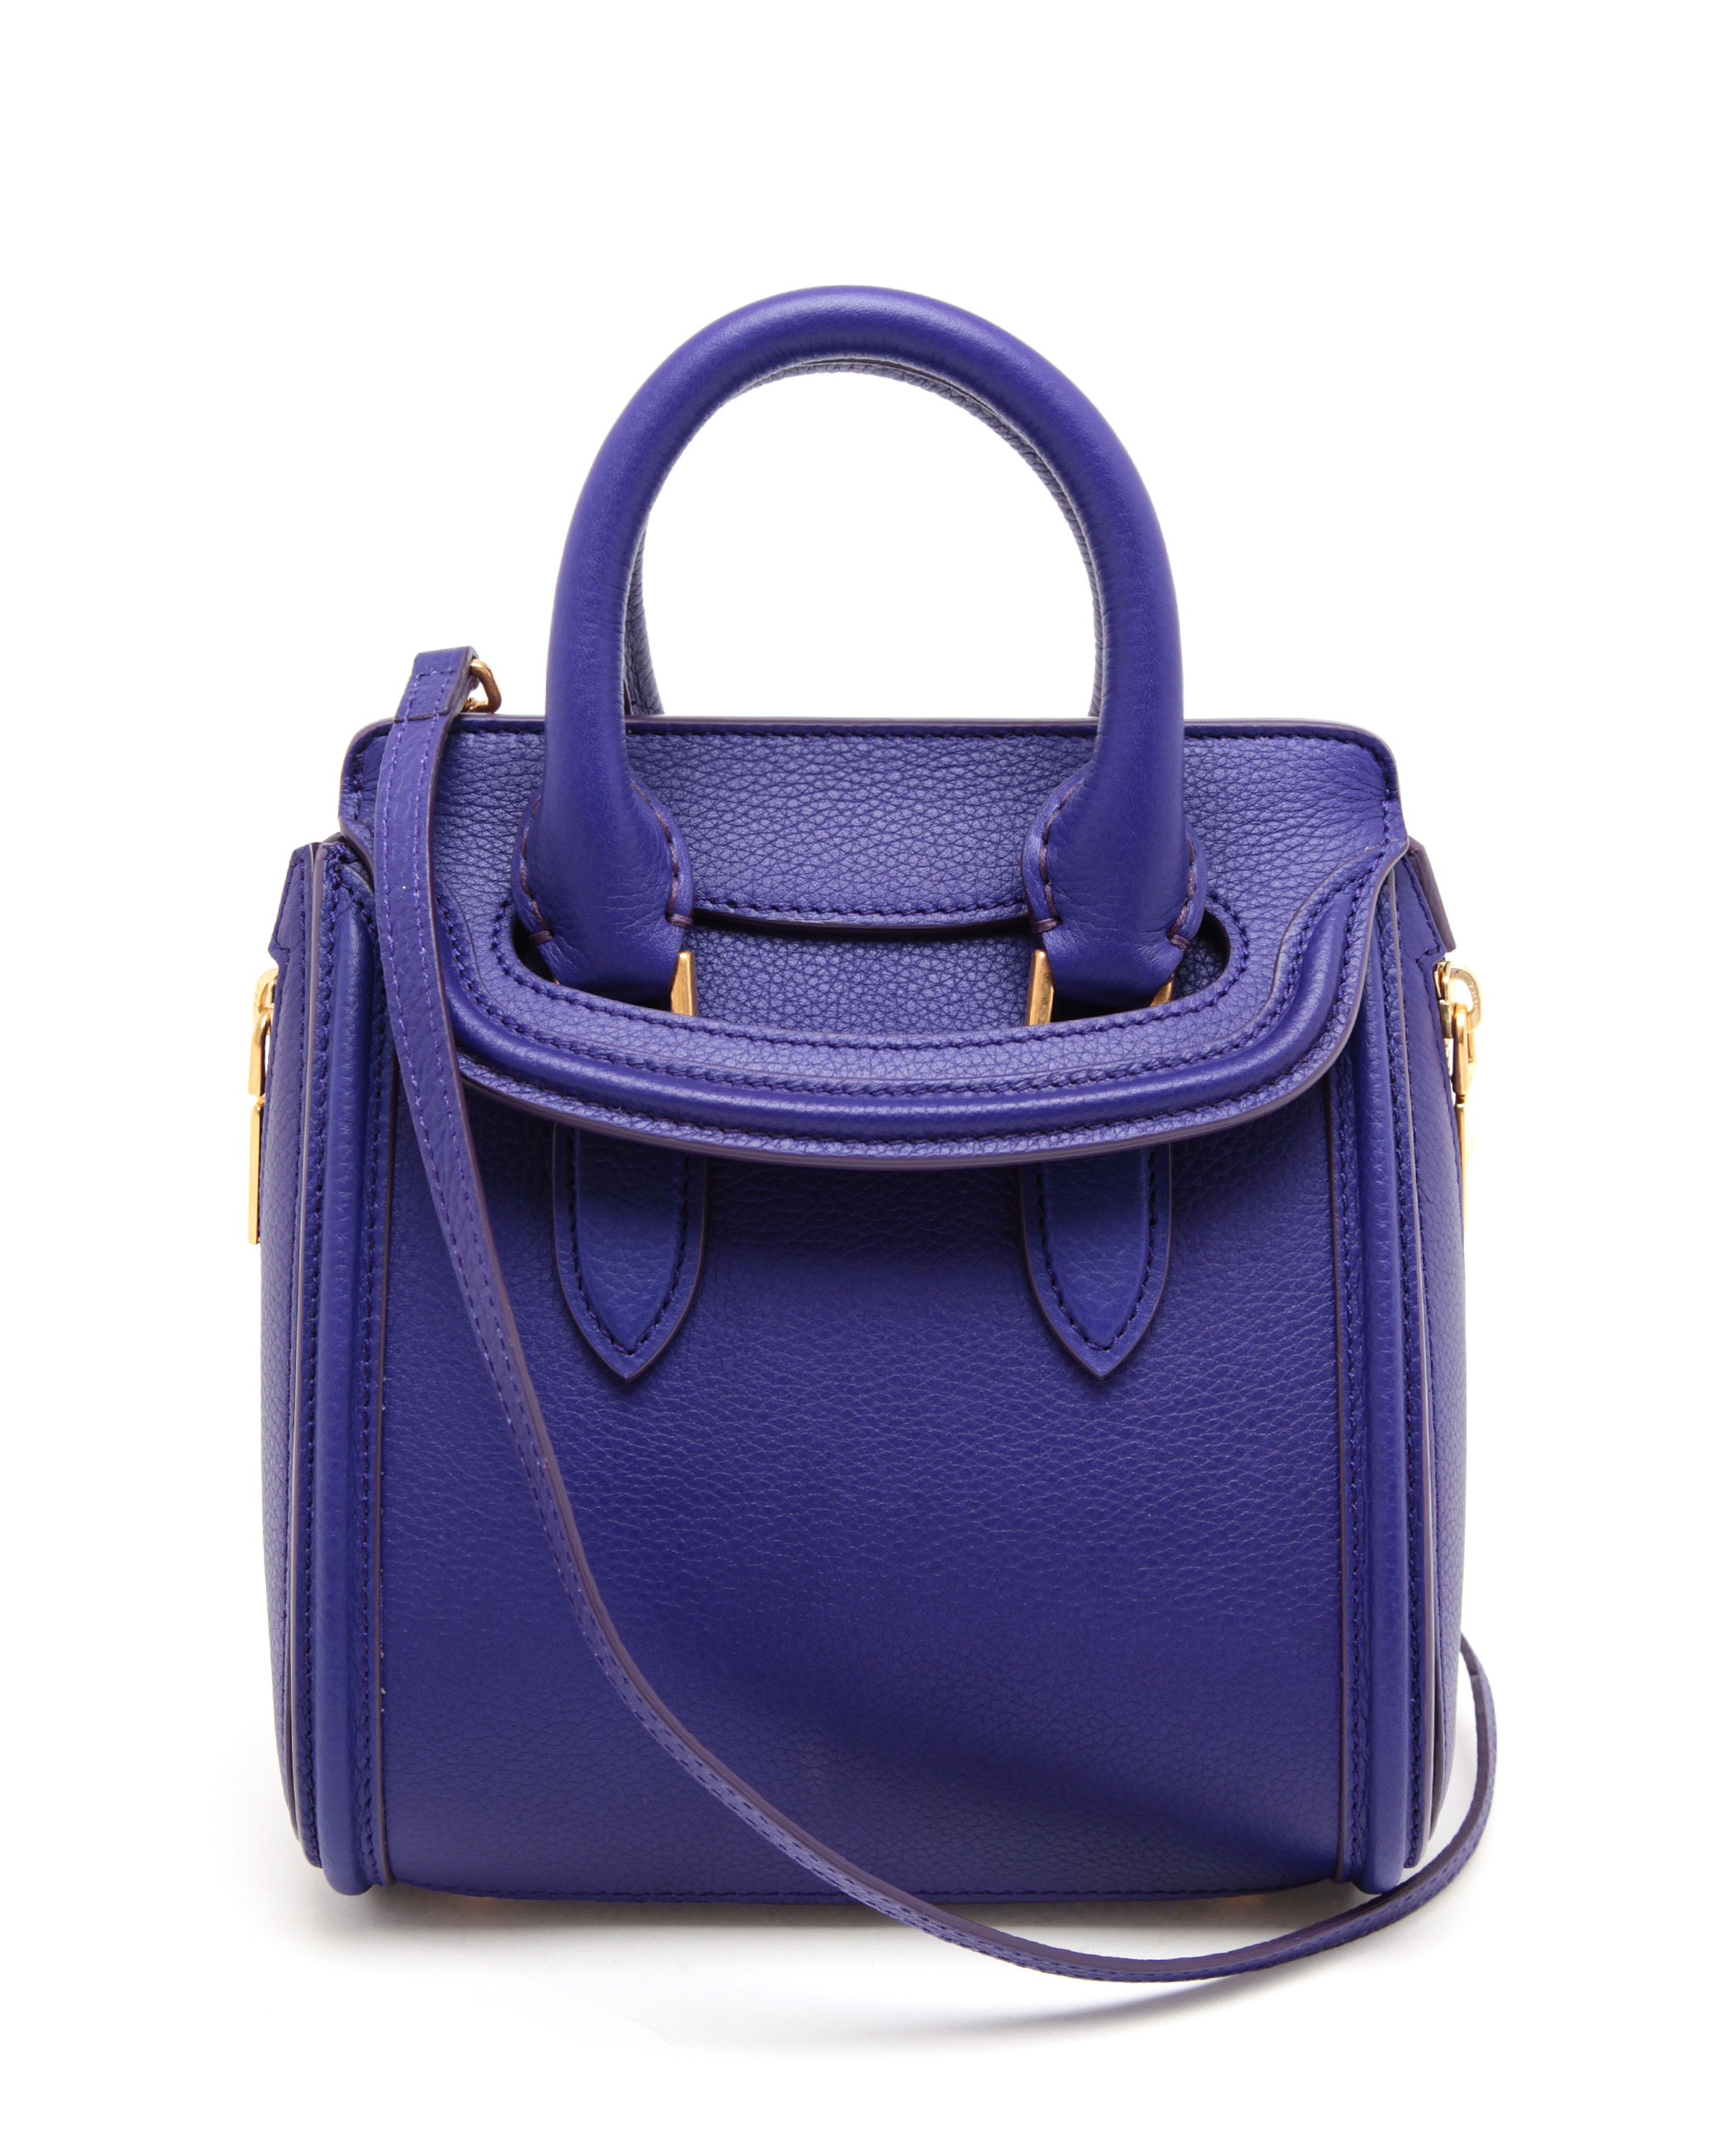 Alexander Mcqueen Heroine Mini Leather Bag in Blue | Lyst